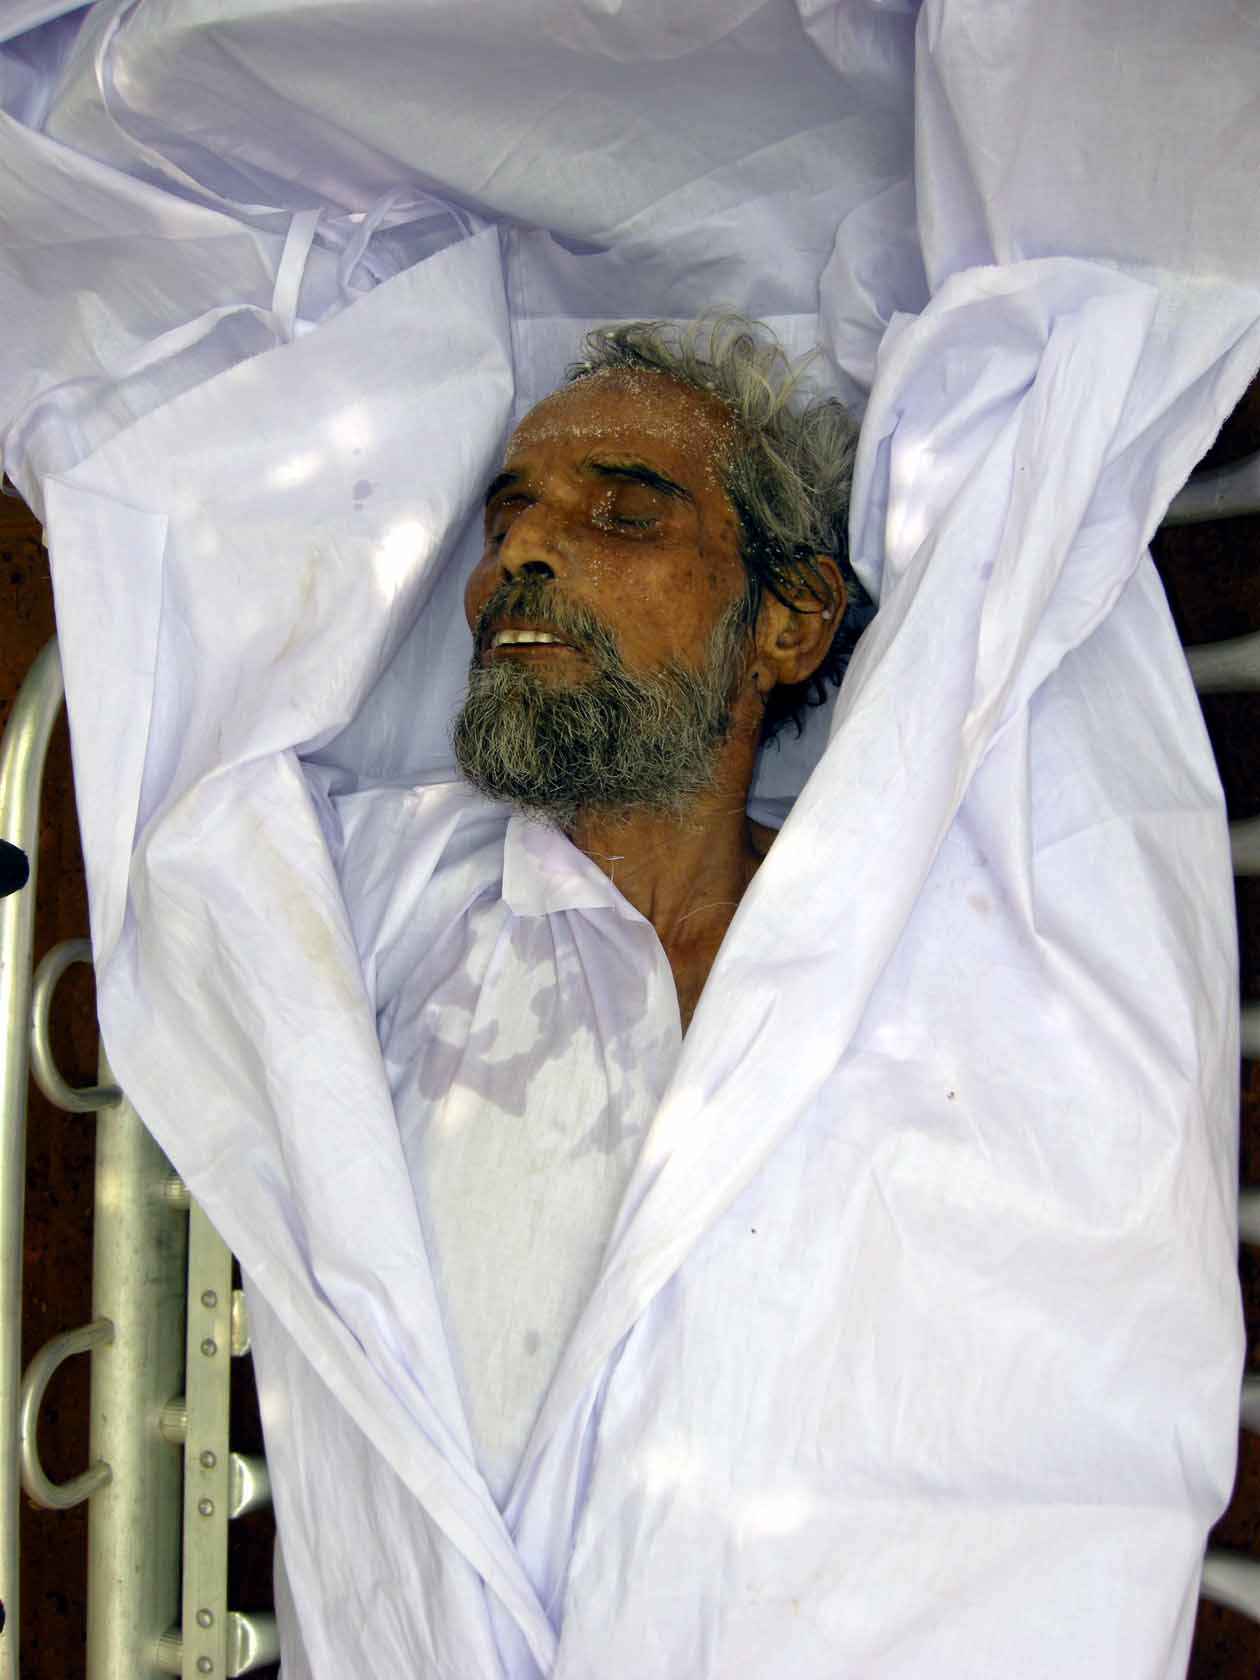 Orissa's legendary athlete Seikh Gulzar after he passed away in Bhubaneswar on April 8, 2009.